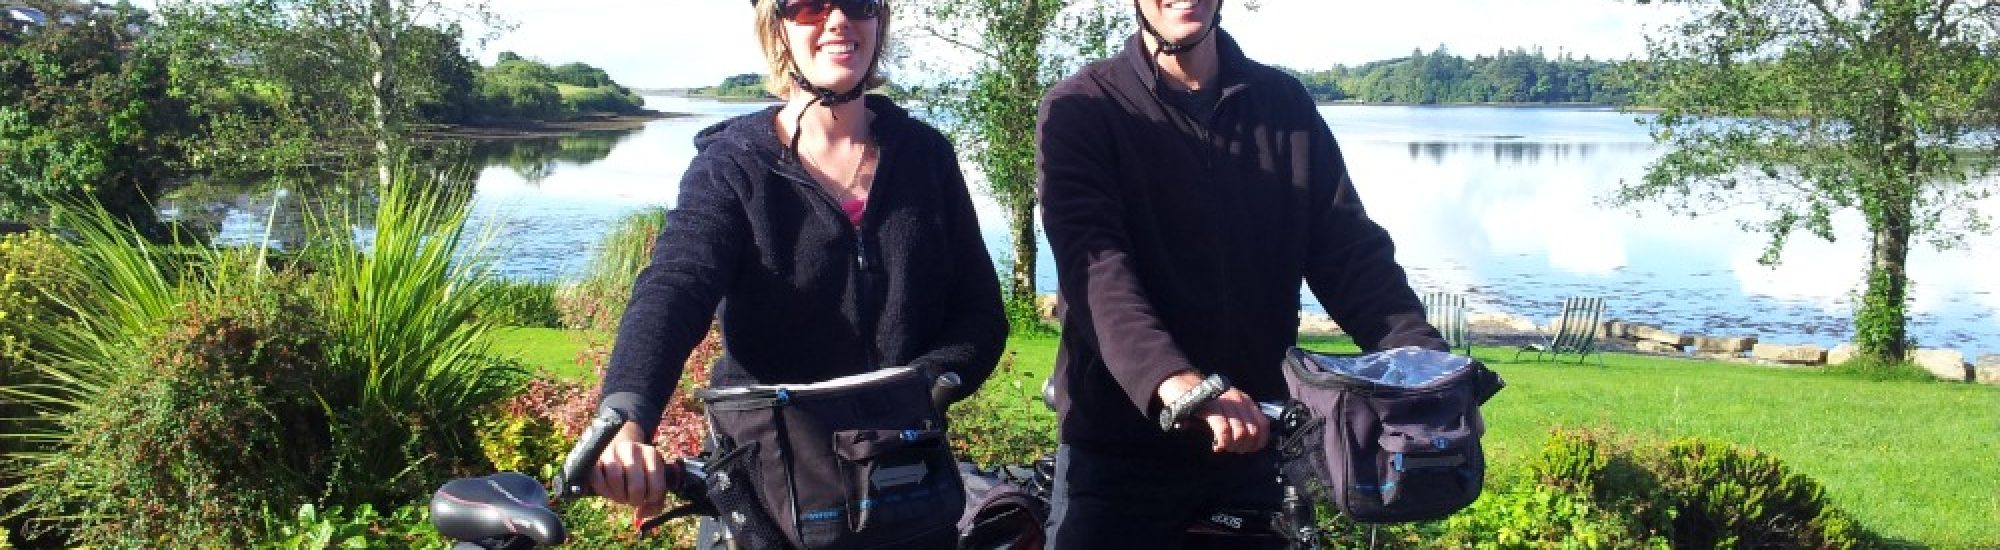 Bike Tour Review Arden and Twylla